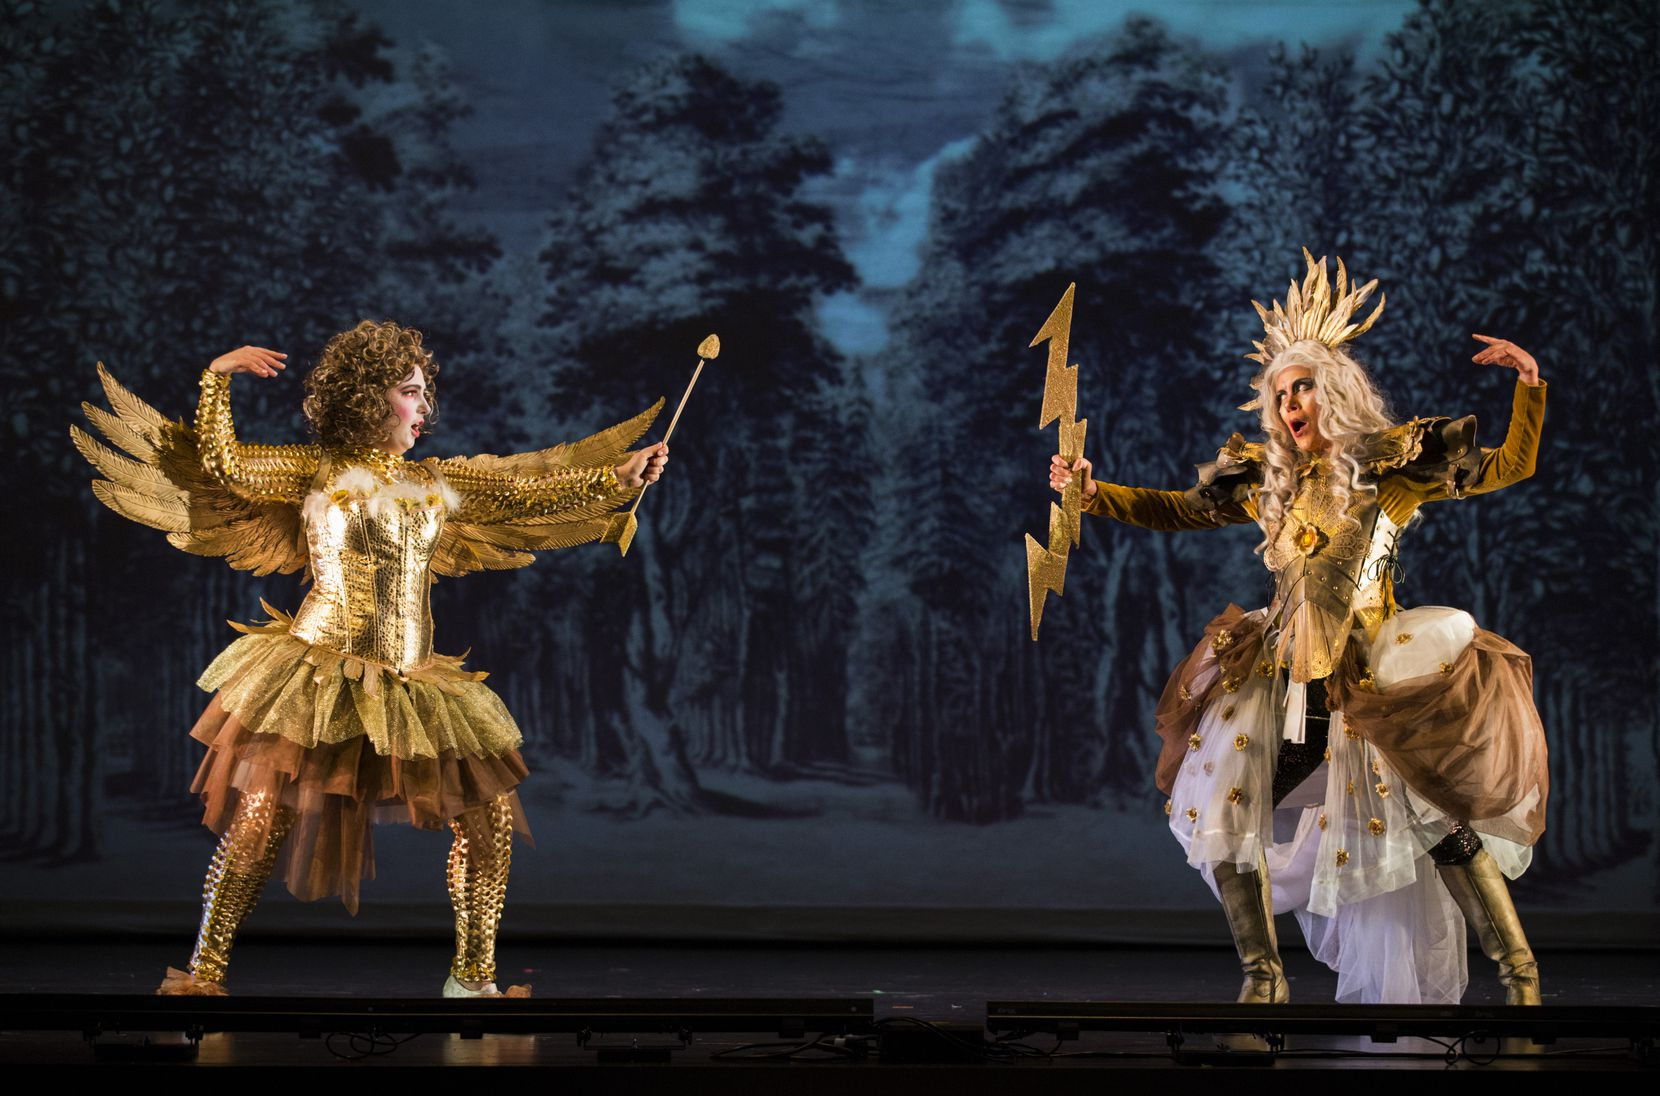 Julianna Emanski (left) performs as Amor and Carla Lopez Speziale performs as Jupiter during a dress rehearsal of Orchestra of New Spain's production of Sebastian Durón's 'Love Conquers Impossible Love' on Feb. 19, 2020 at Moody Performance Hall in Dallas.